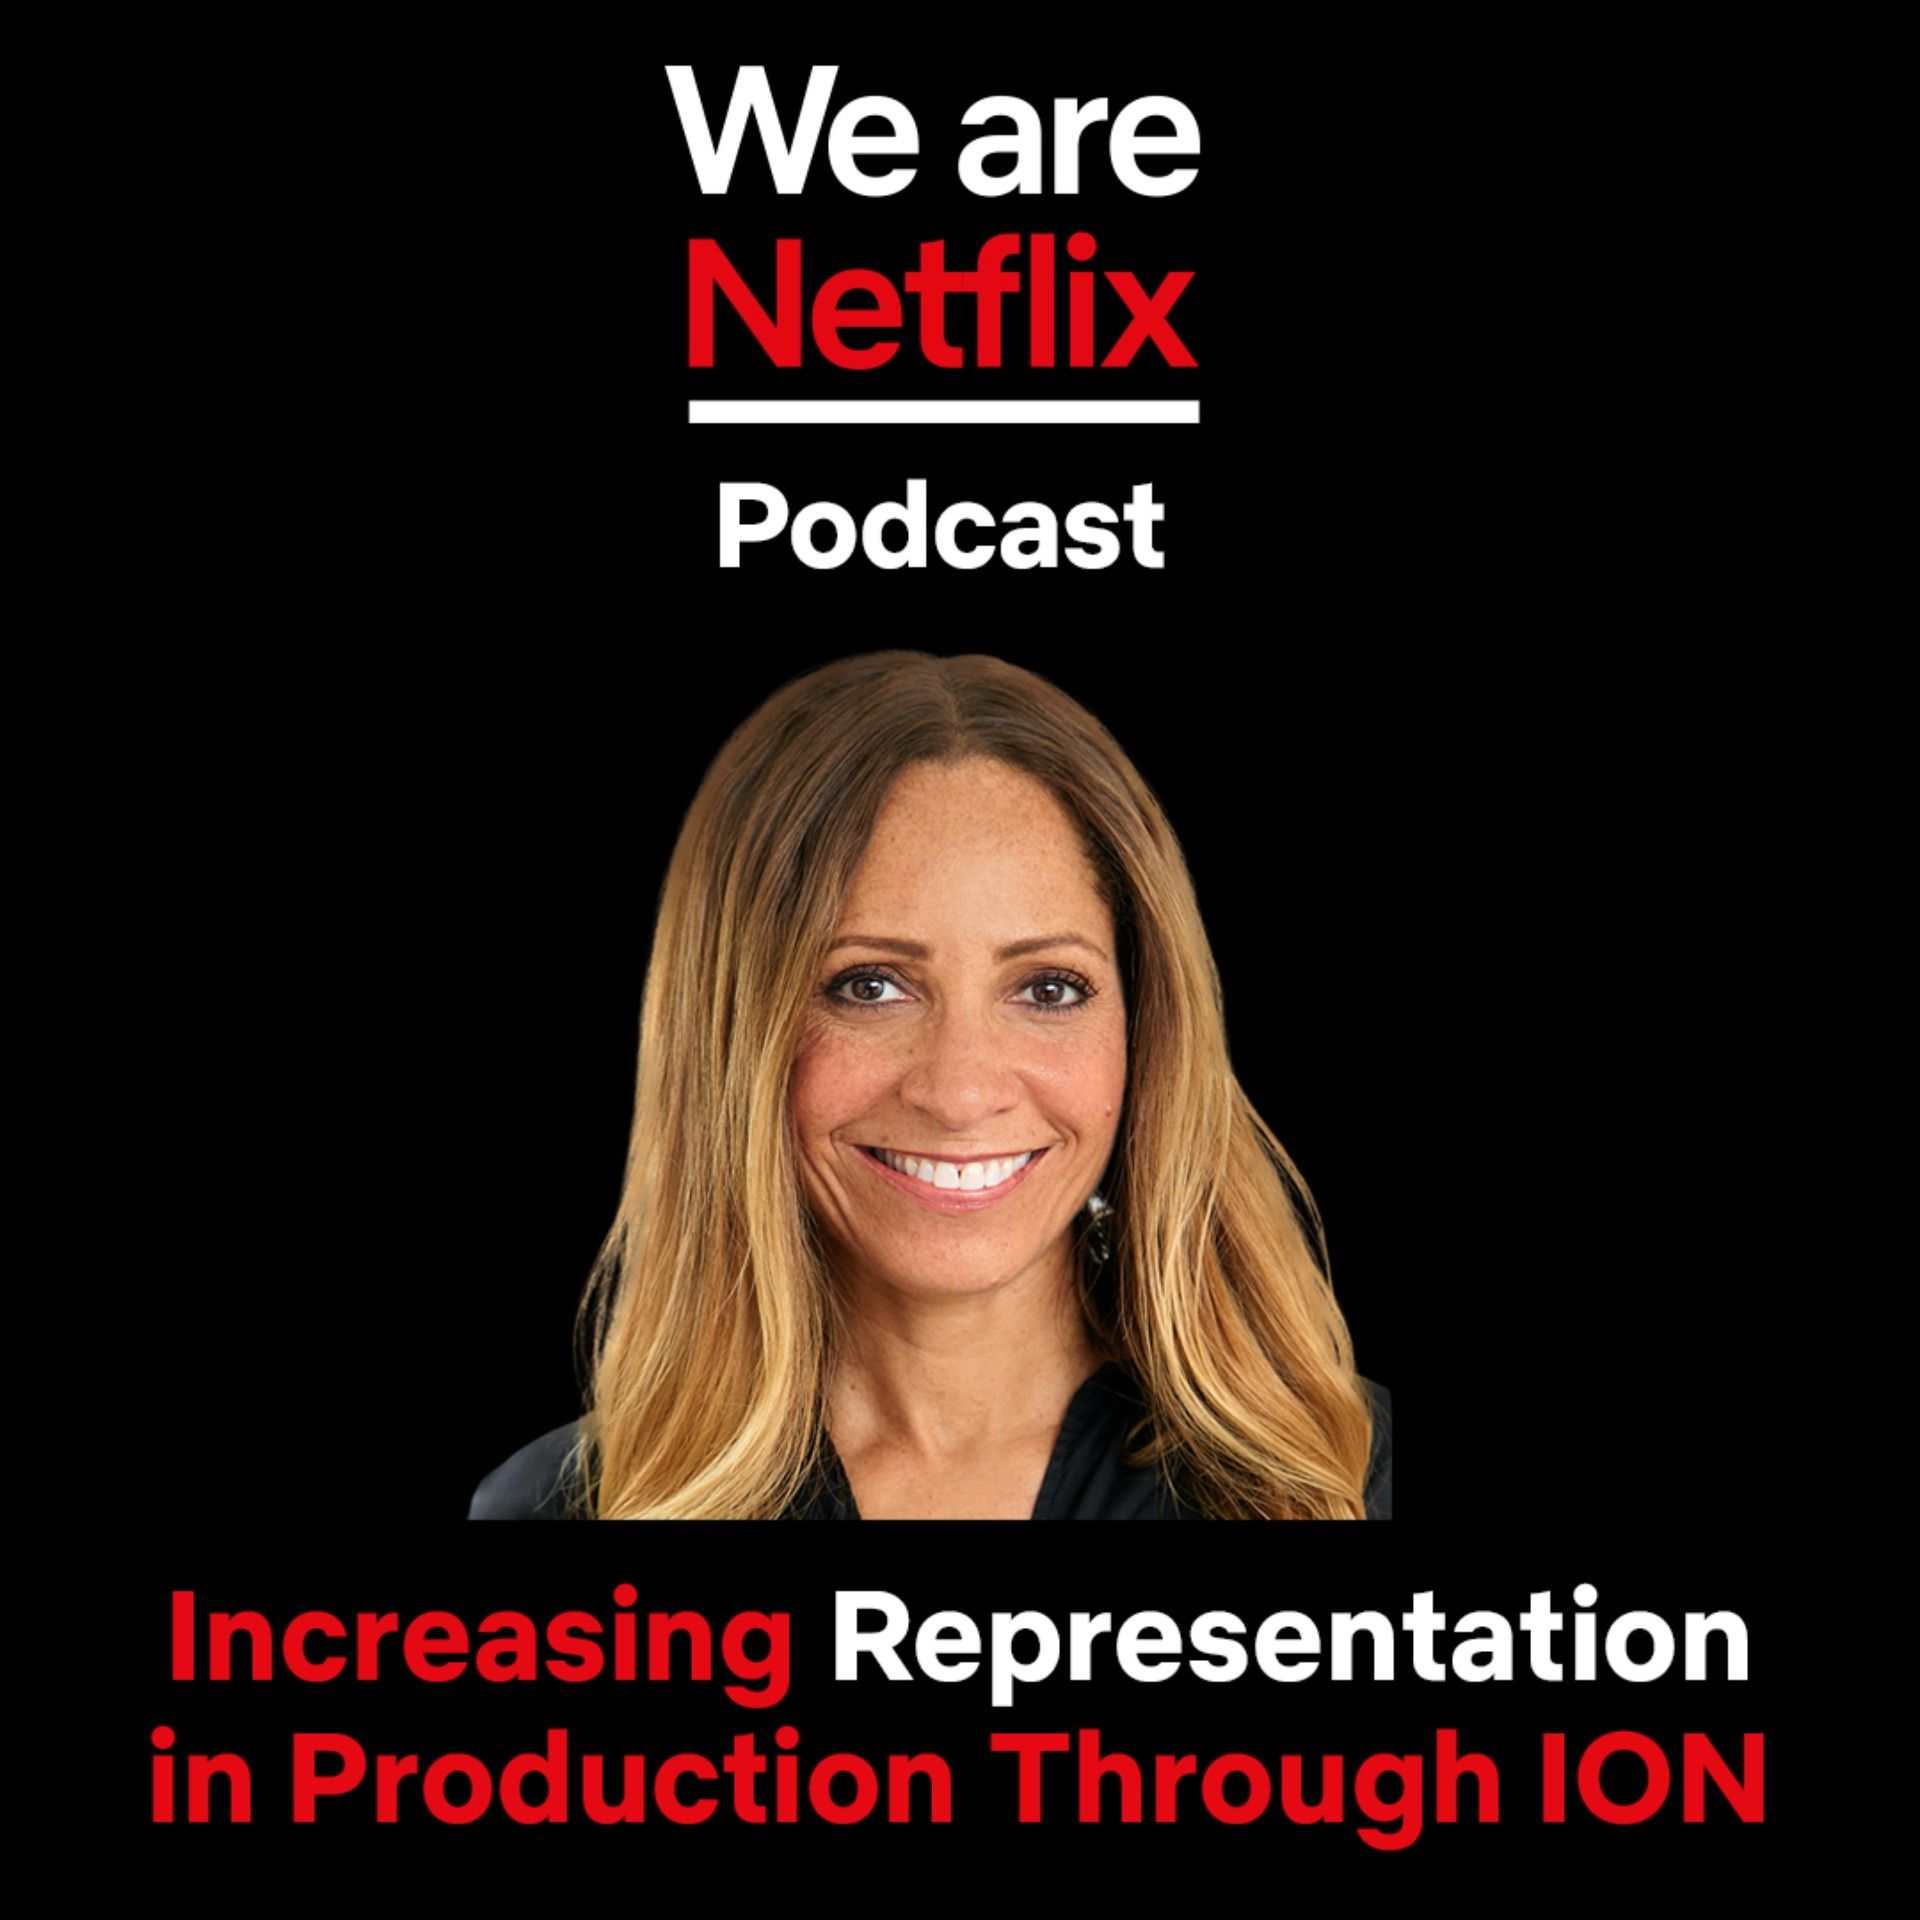 Increasing Representation in Production Through ION